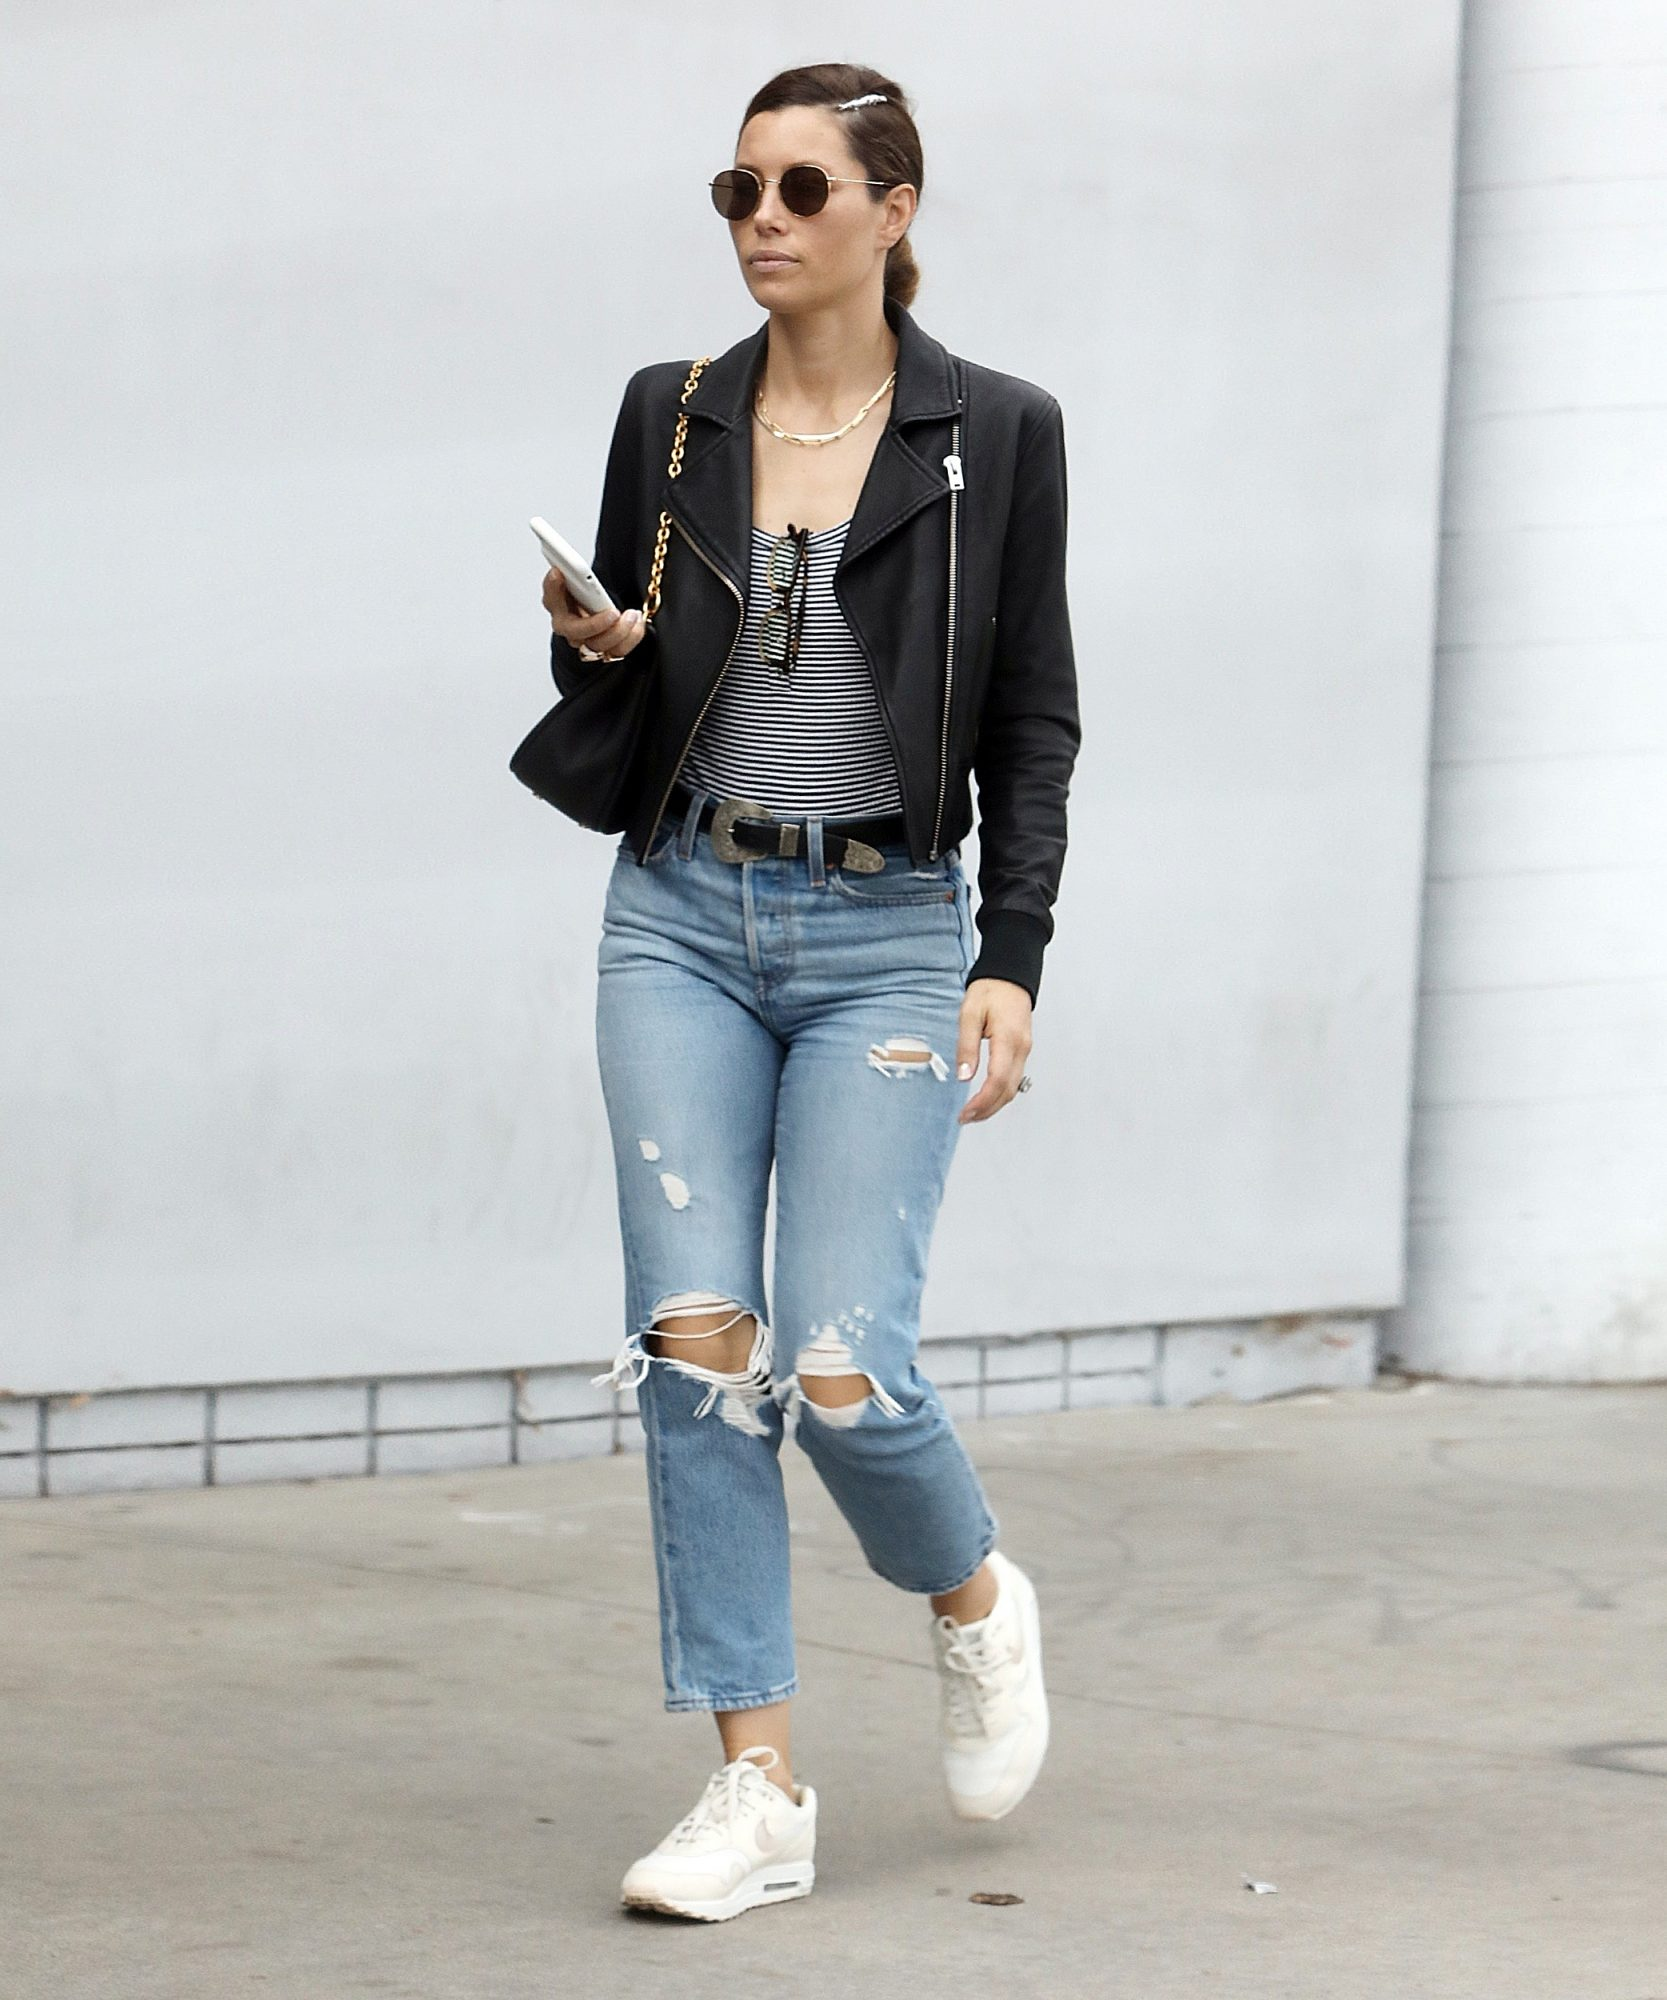 The Levi's Jessica Biel Wore Are Already 25% Off For Nordstrom's Black Friday Sale